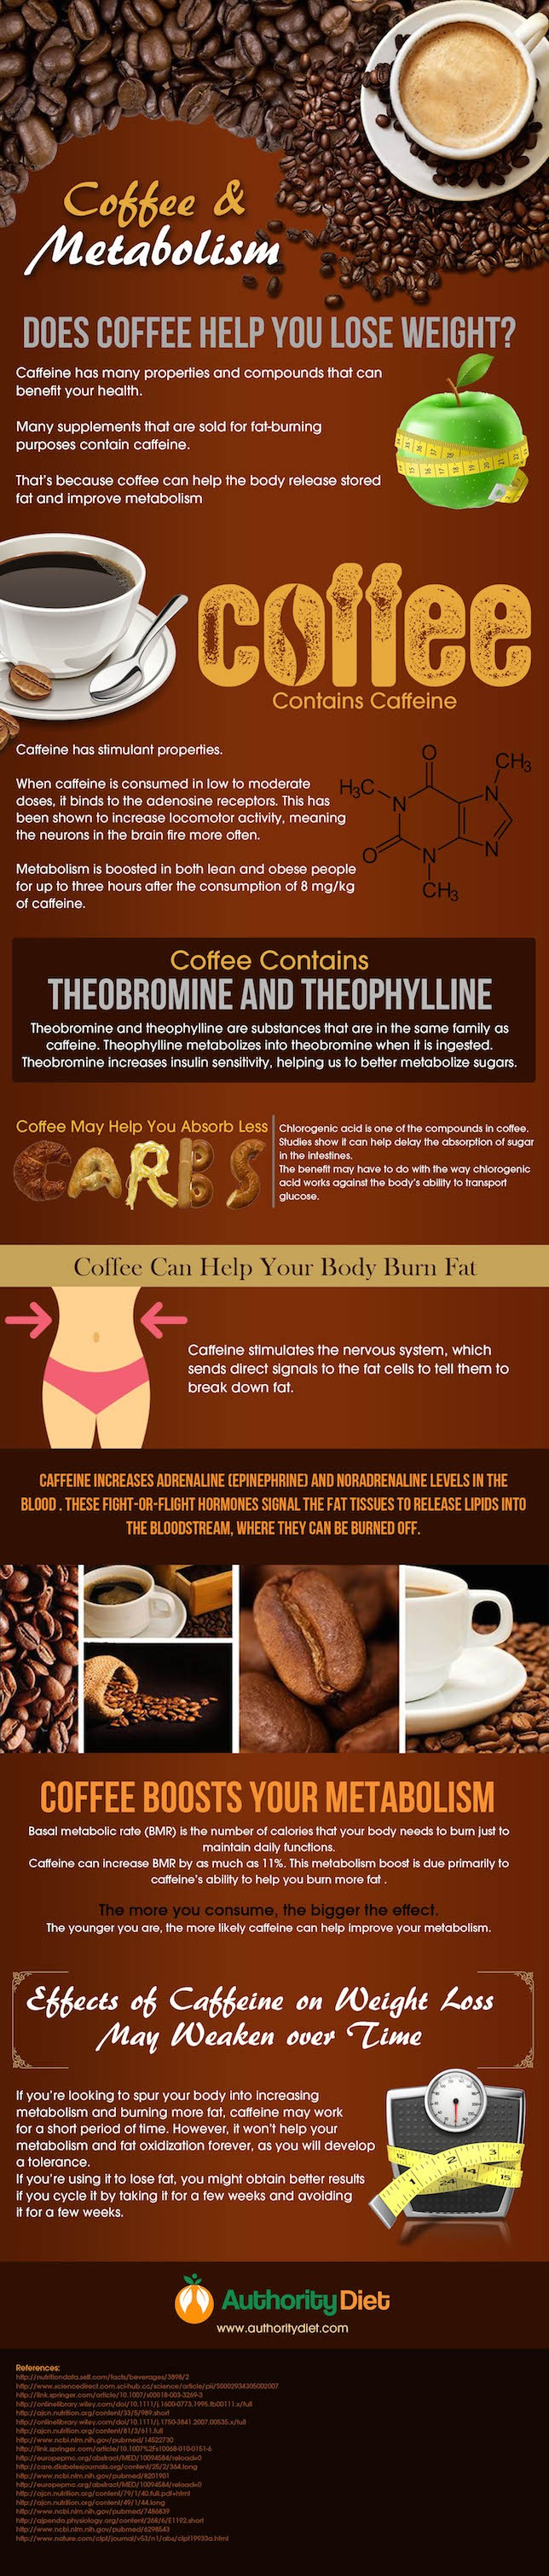 Losing Weight by Drinking Coffee